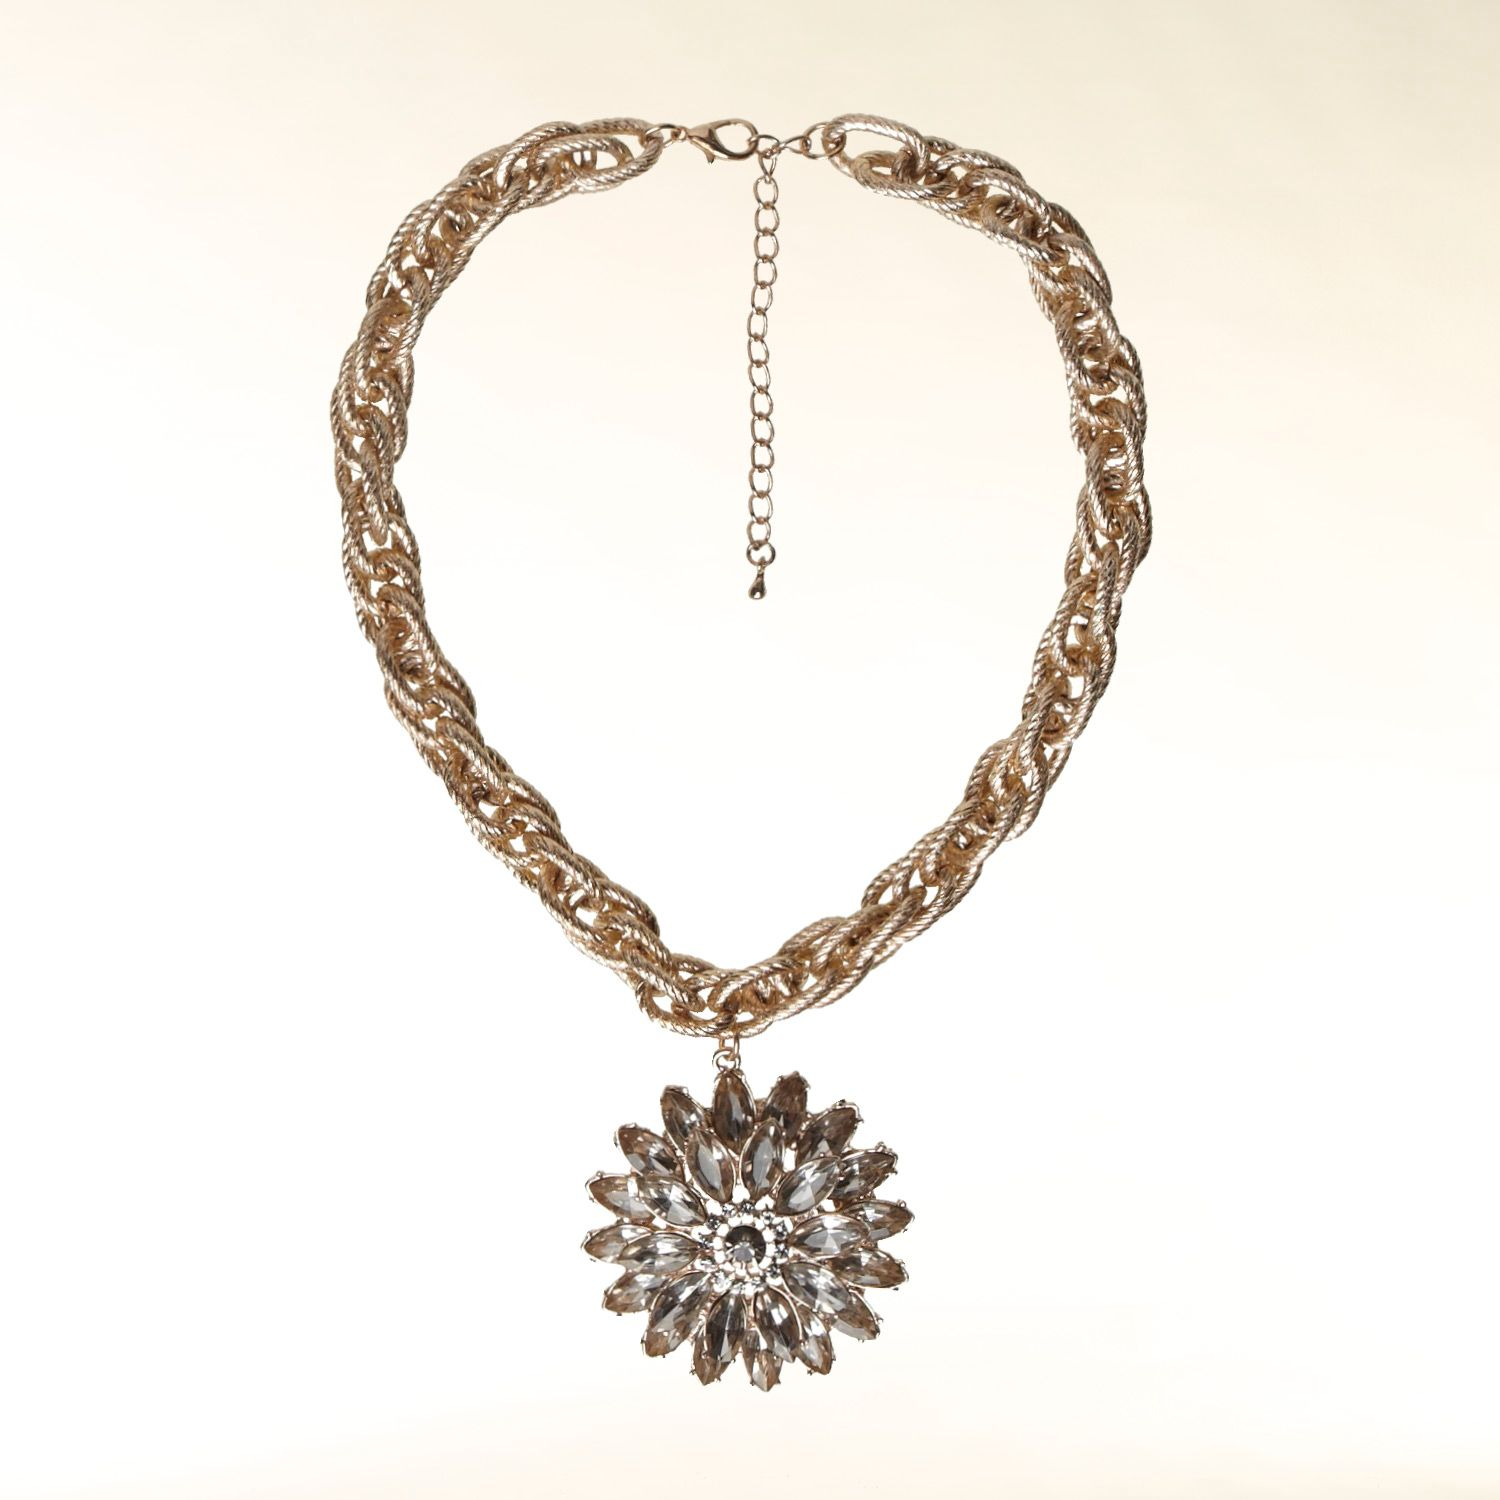 Collar necklace with rhinestone flower